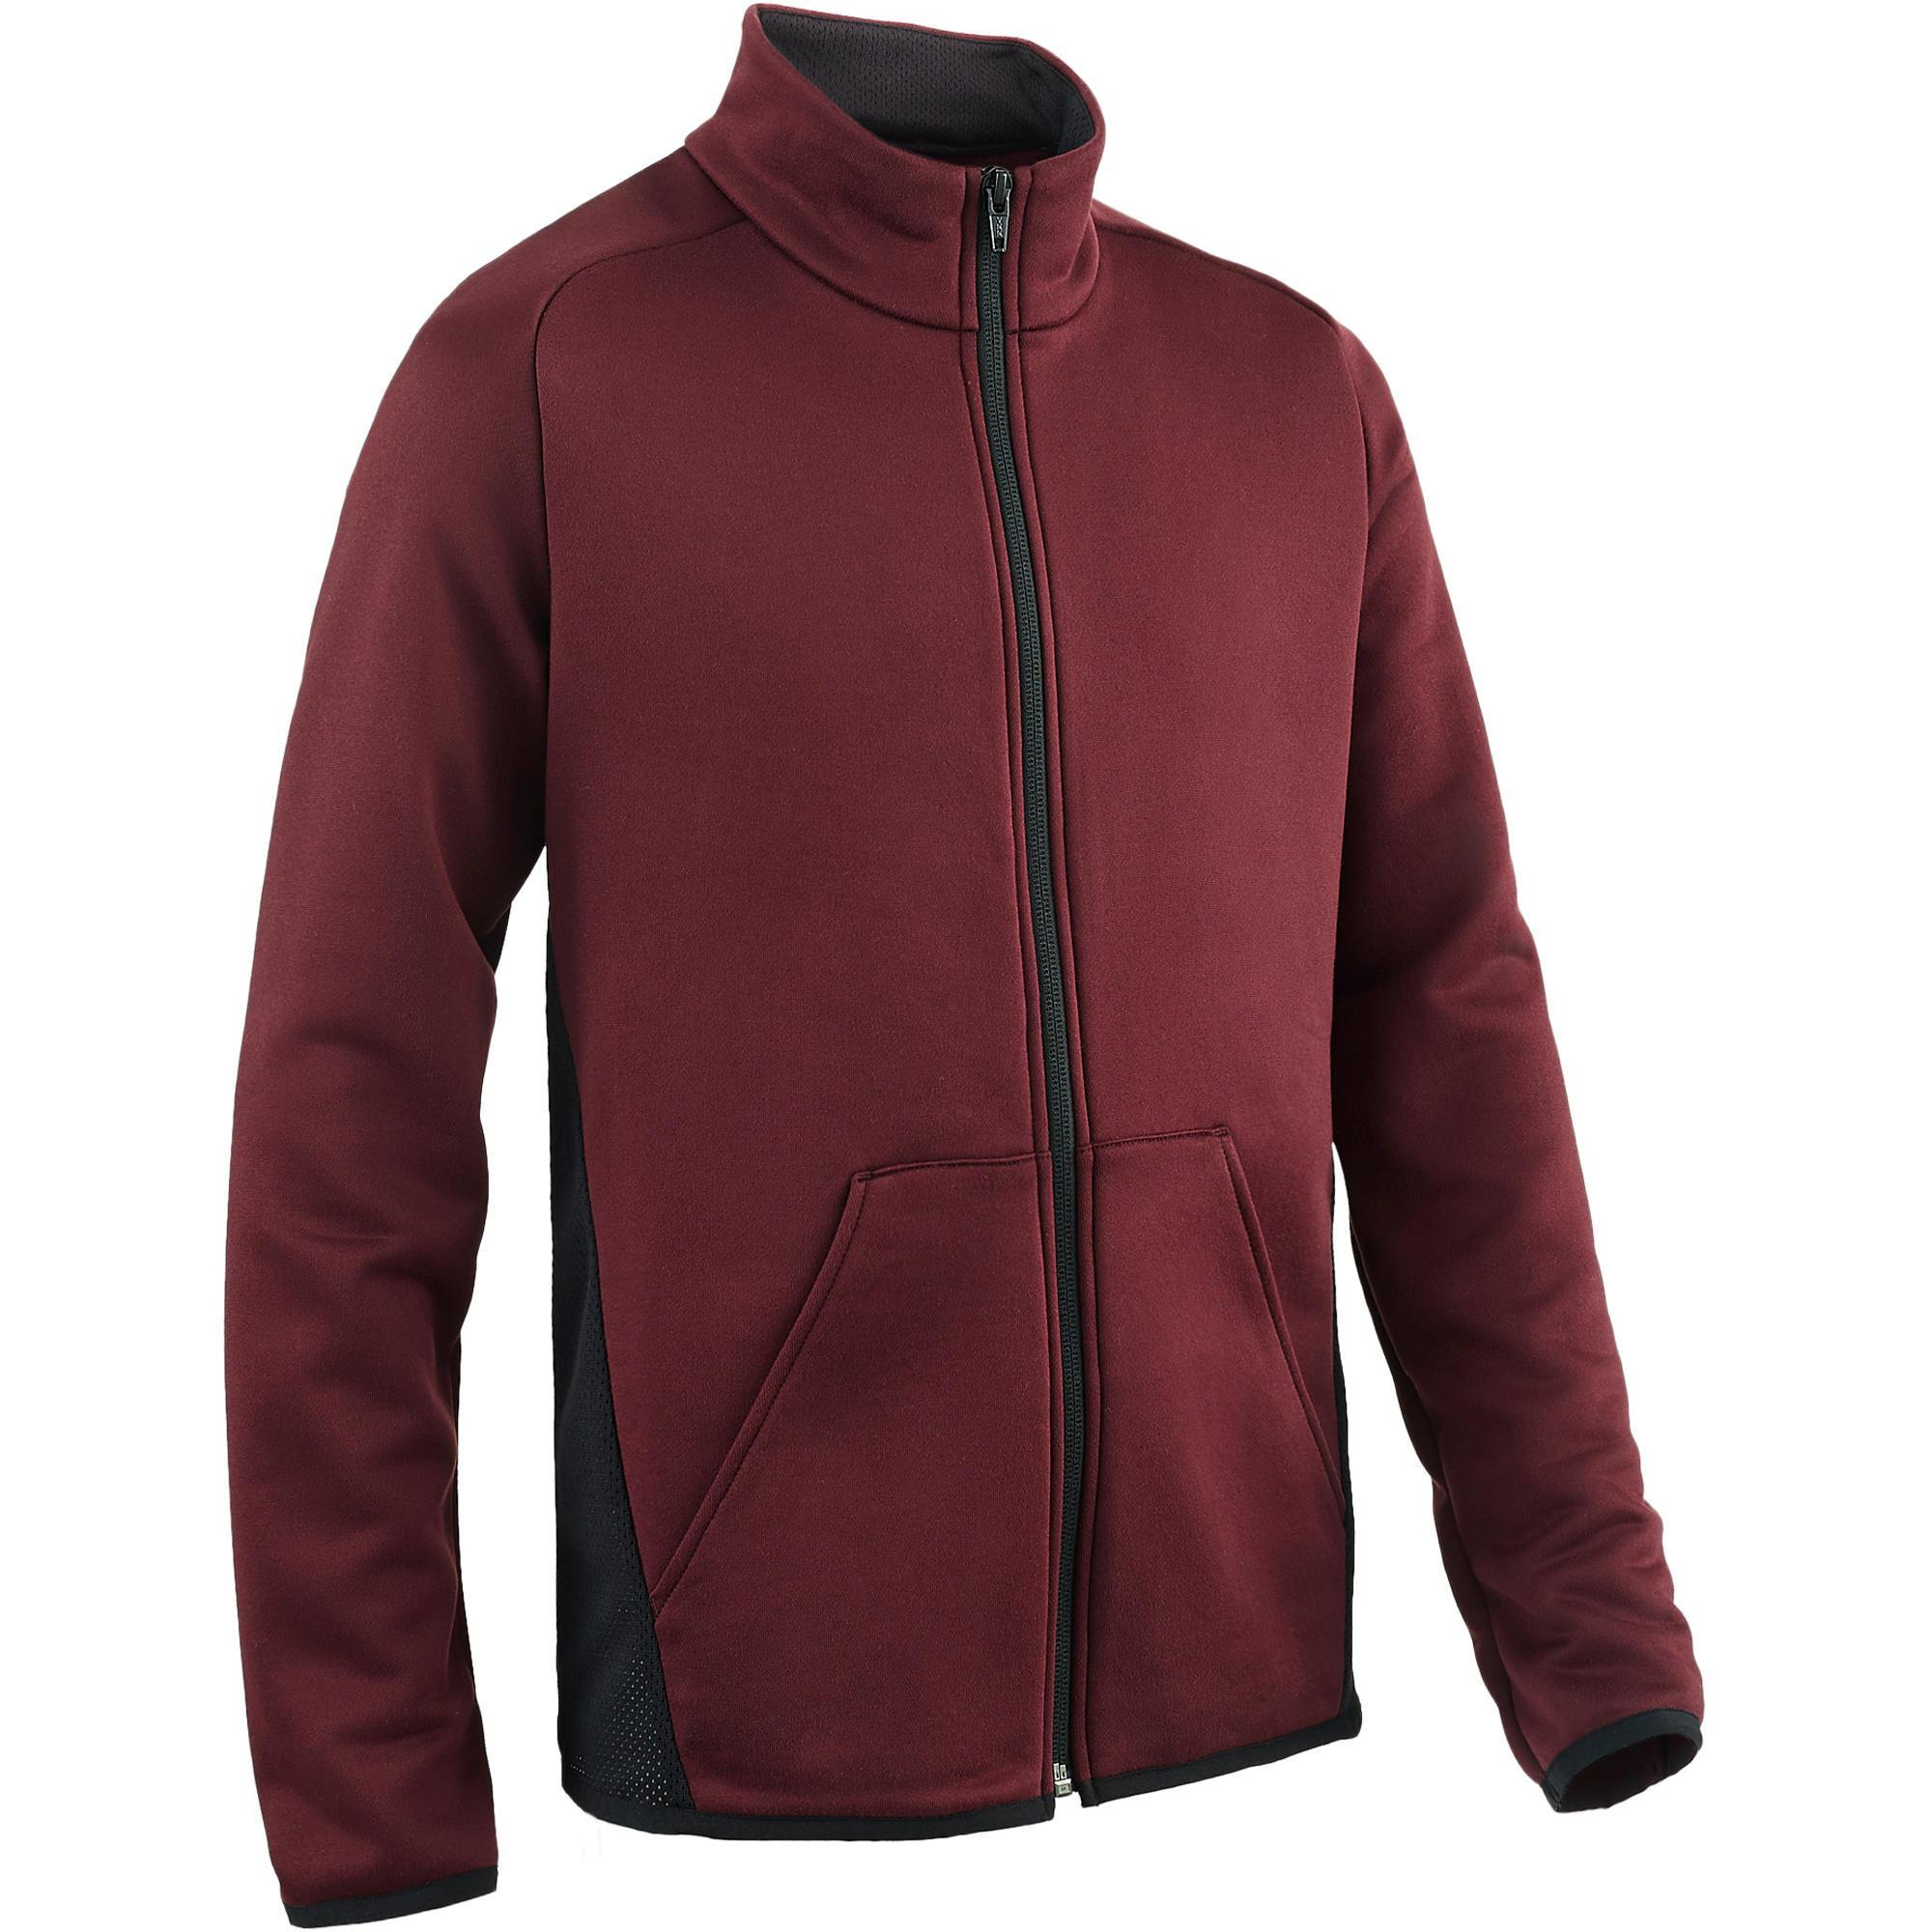 Trainingsjacke S500 Gym Kinder bordeaux/schwarz